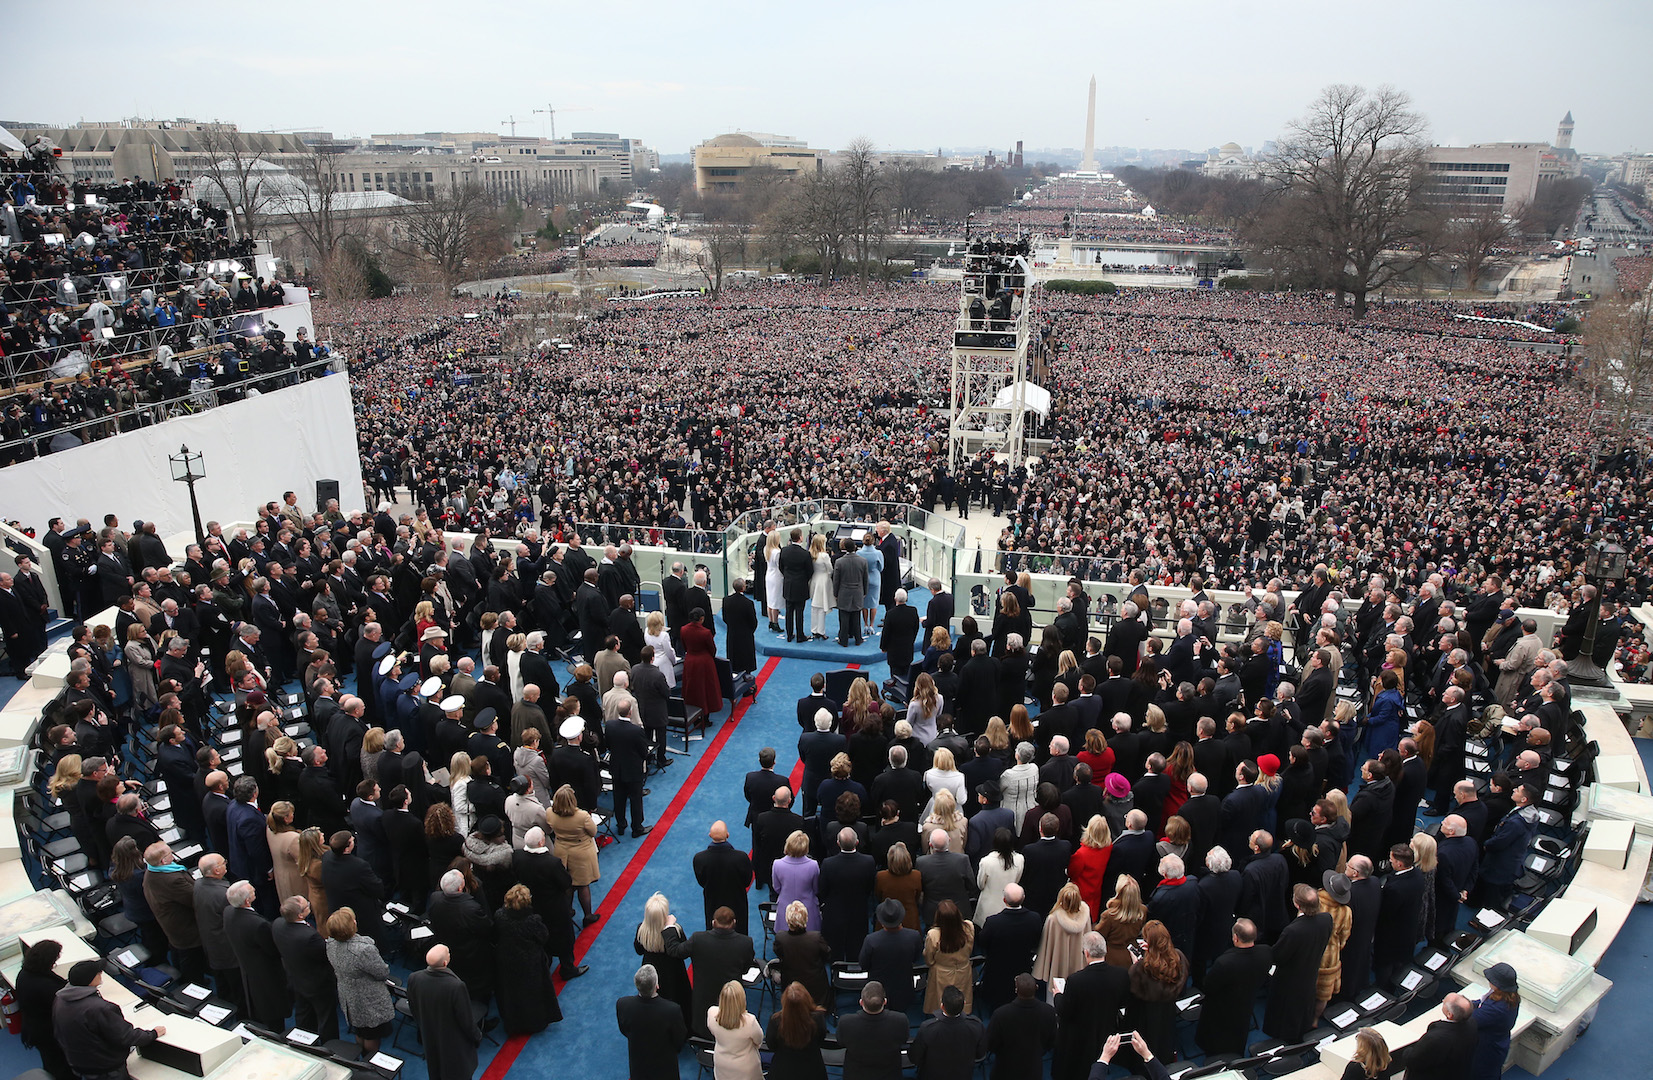 Aerial view of U.S. President-elect Donald Trump taking the oath of office during the 58th presidential inauguration in Washington, D.C., U.S., on Friday, Jan. 20, 2017.